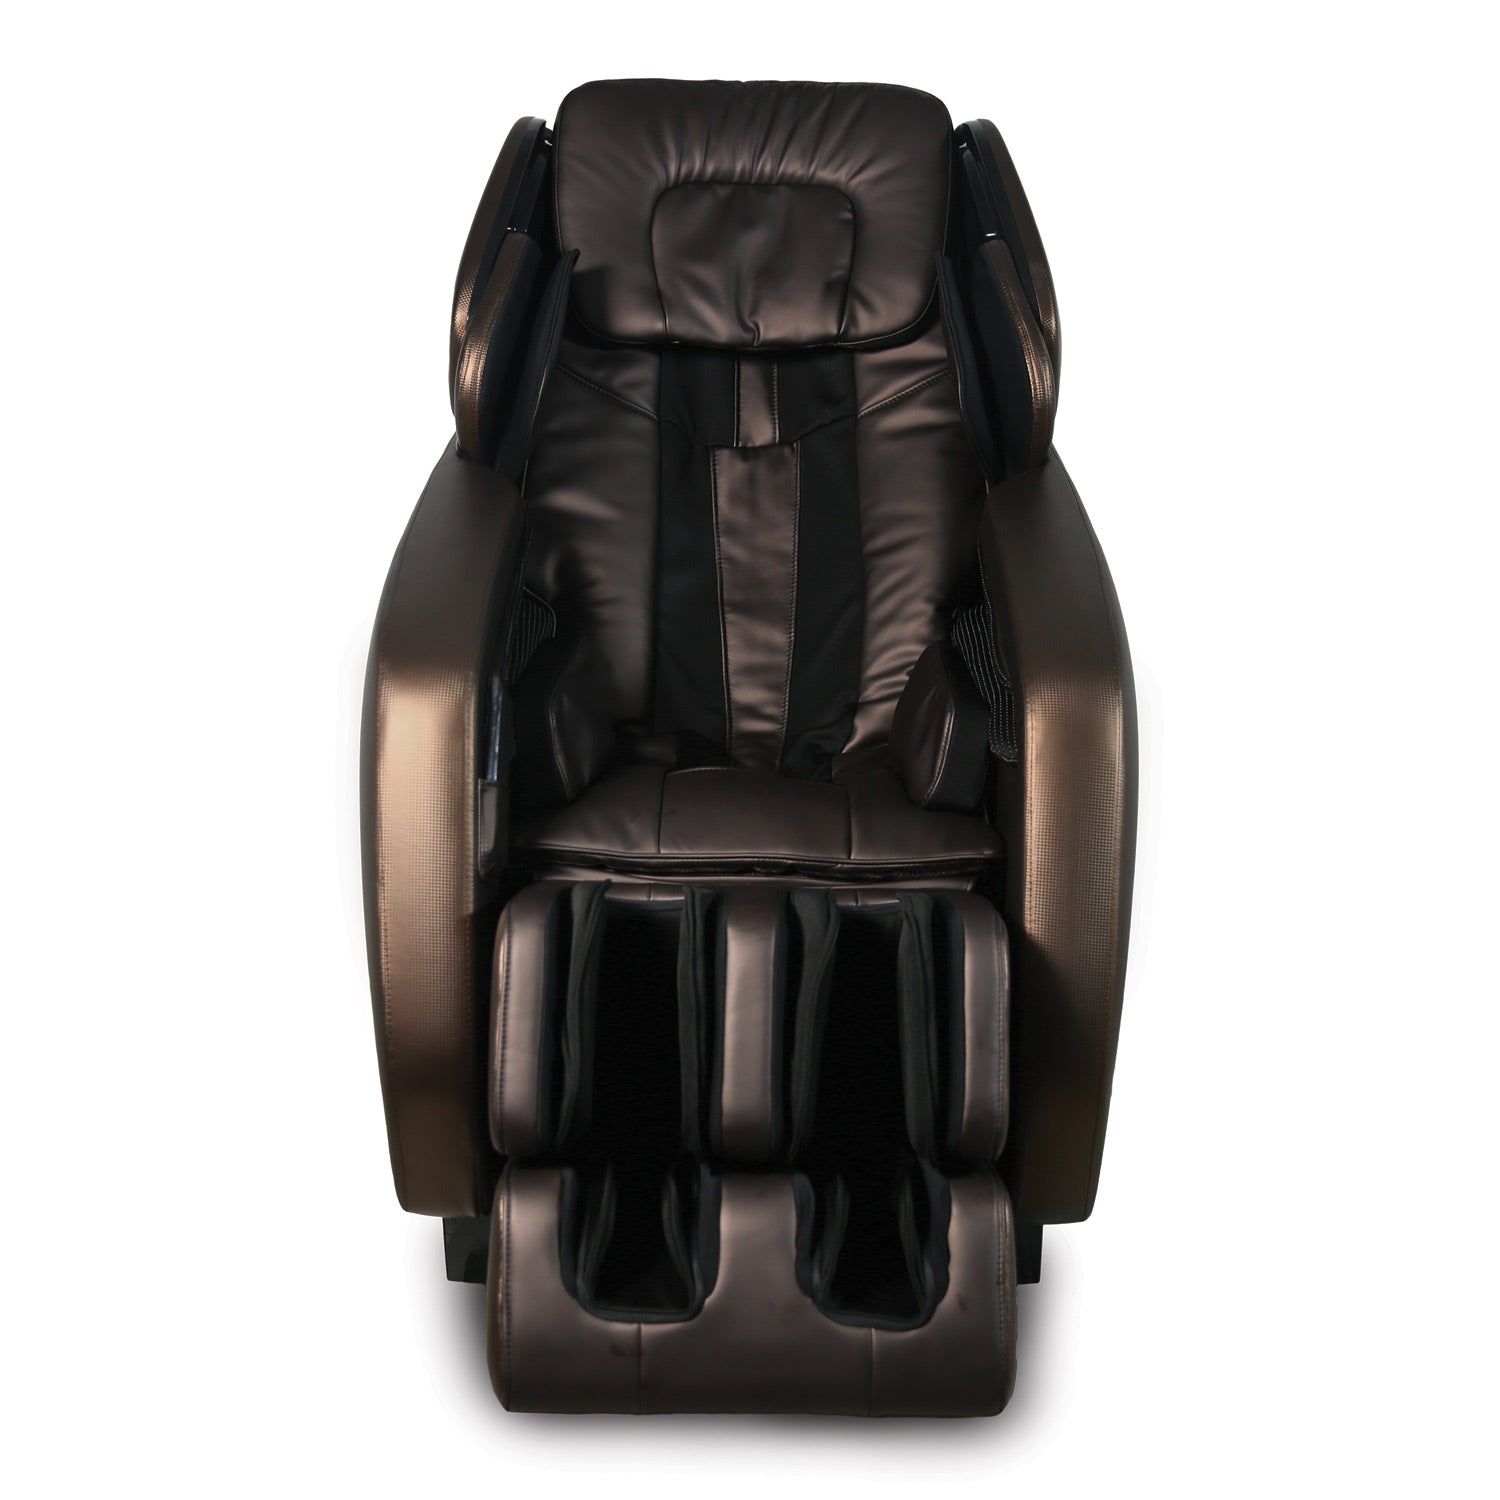 Recertified InstaShiatsu+ Massage Chair MC-2000